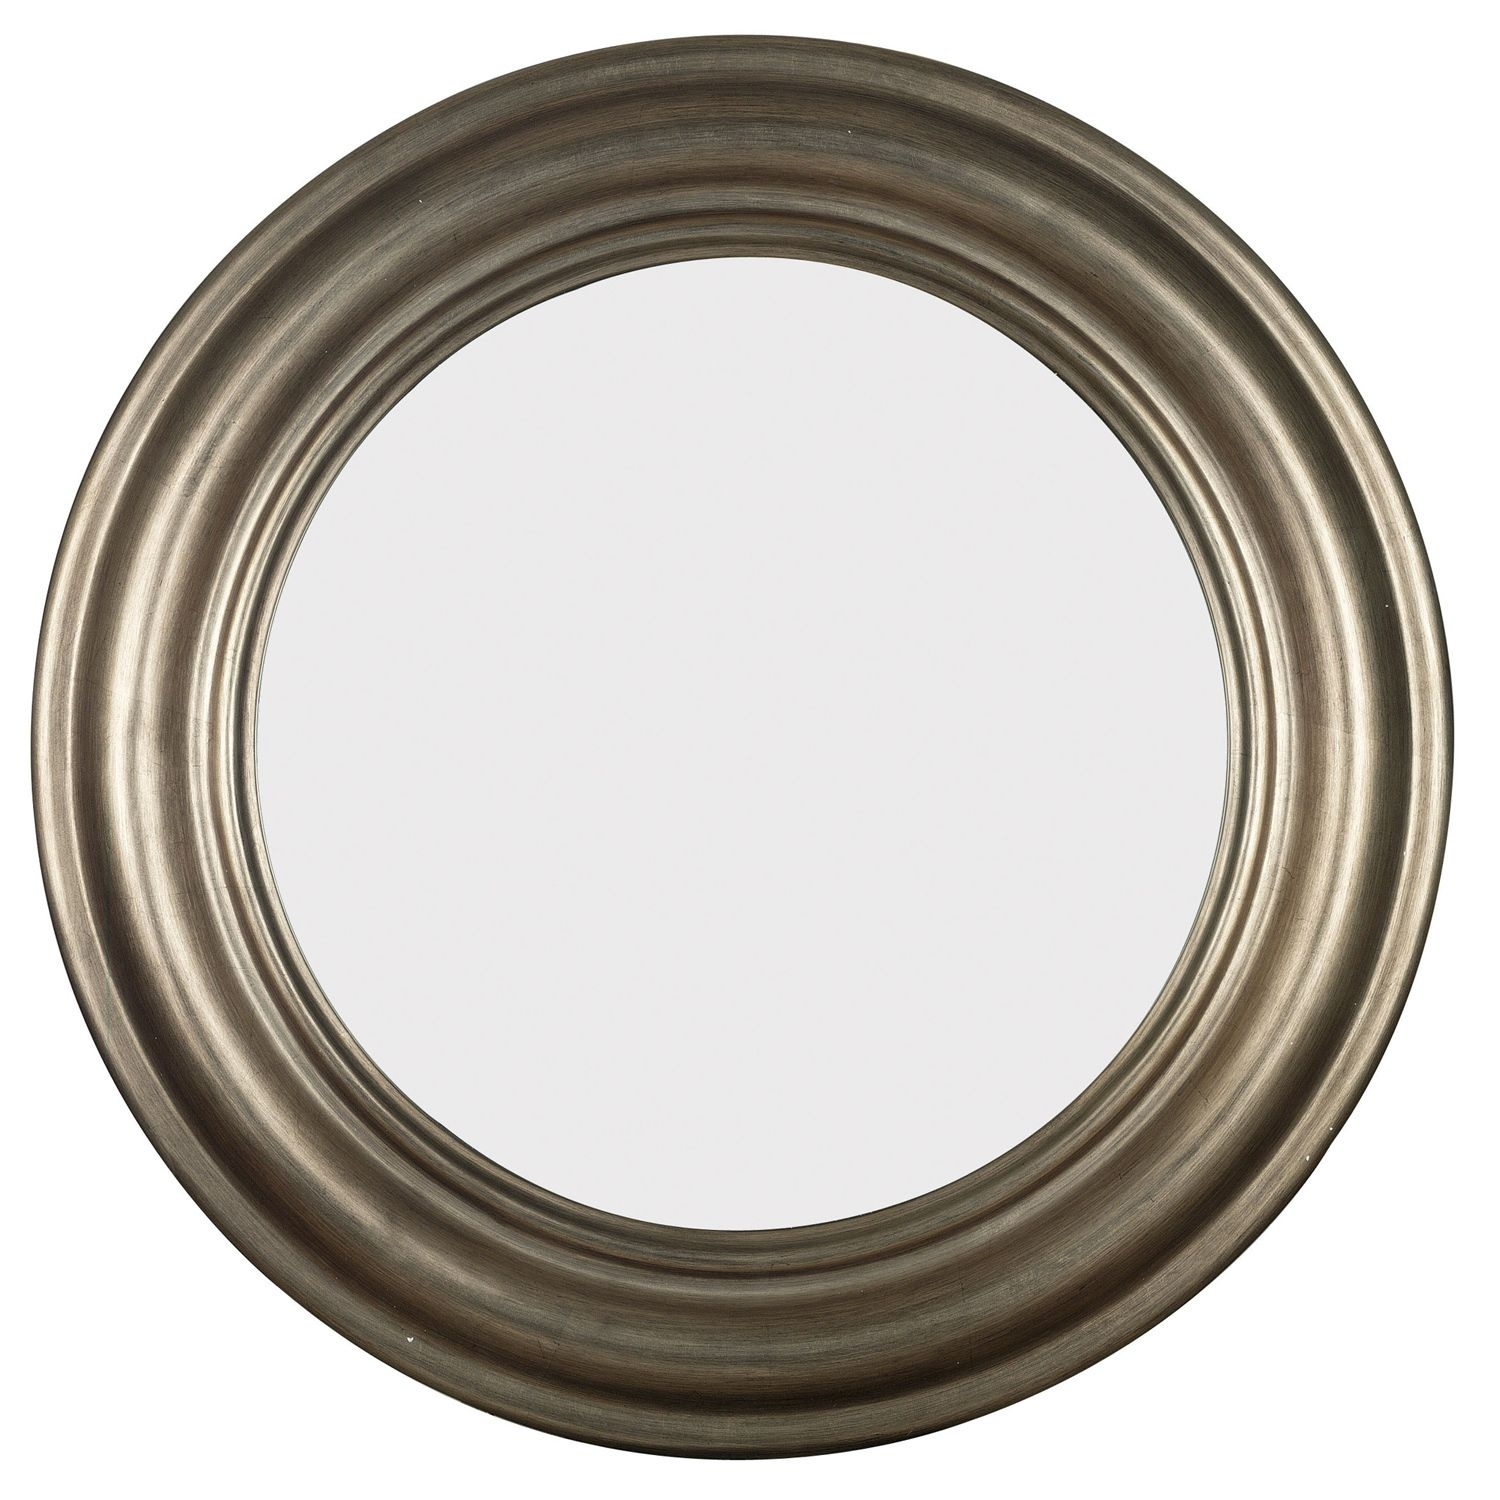 Pasco Round Antique Silver Wall Mirror Design Craft Antique Pertaining To Antique Round Mirrors (View 2 of 15)